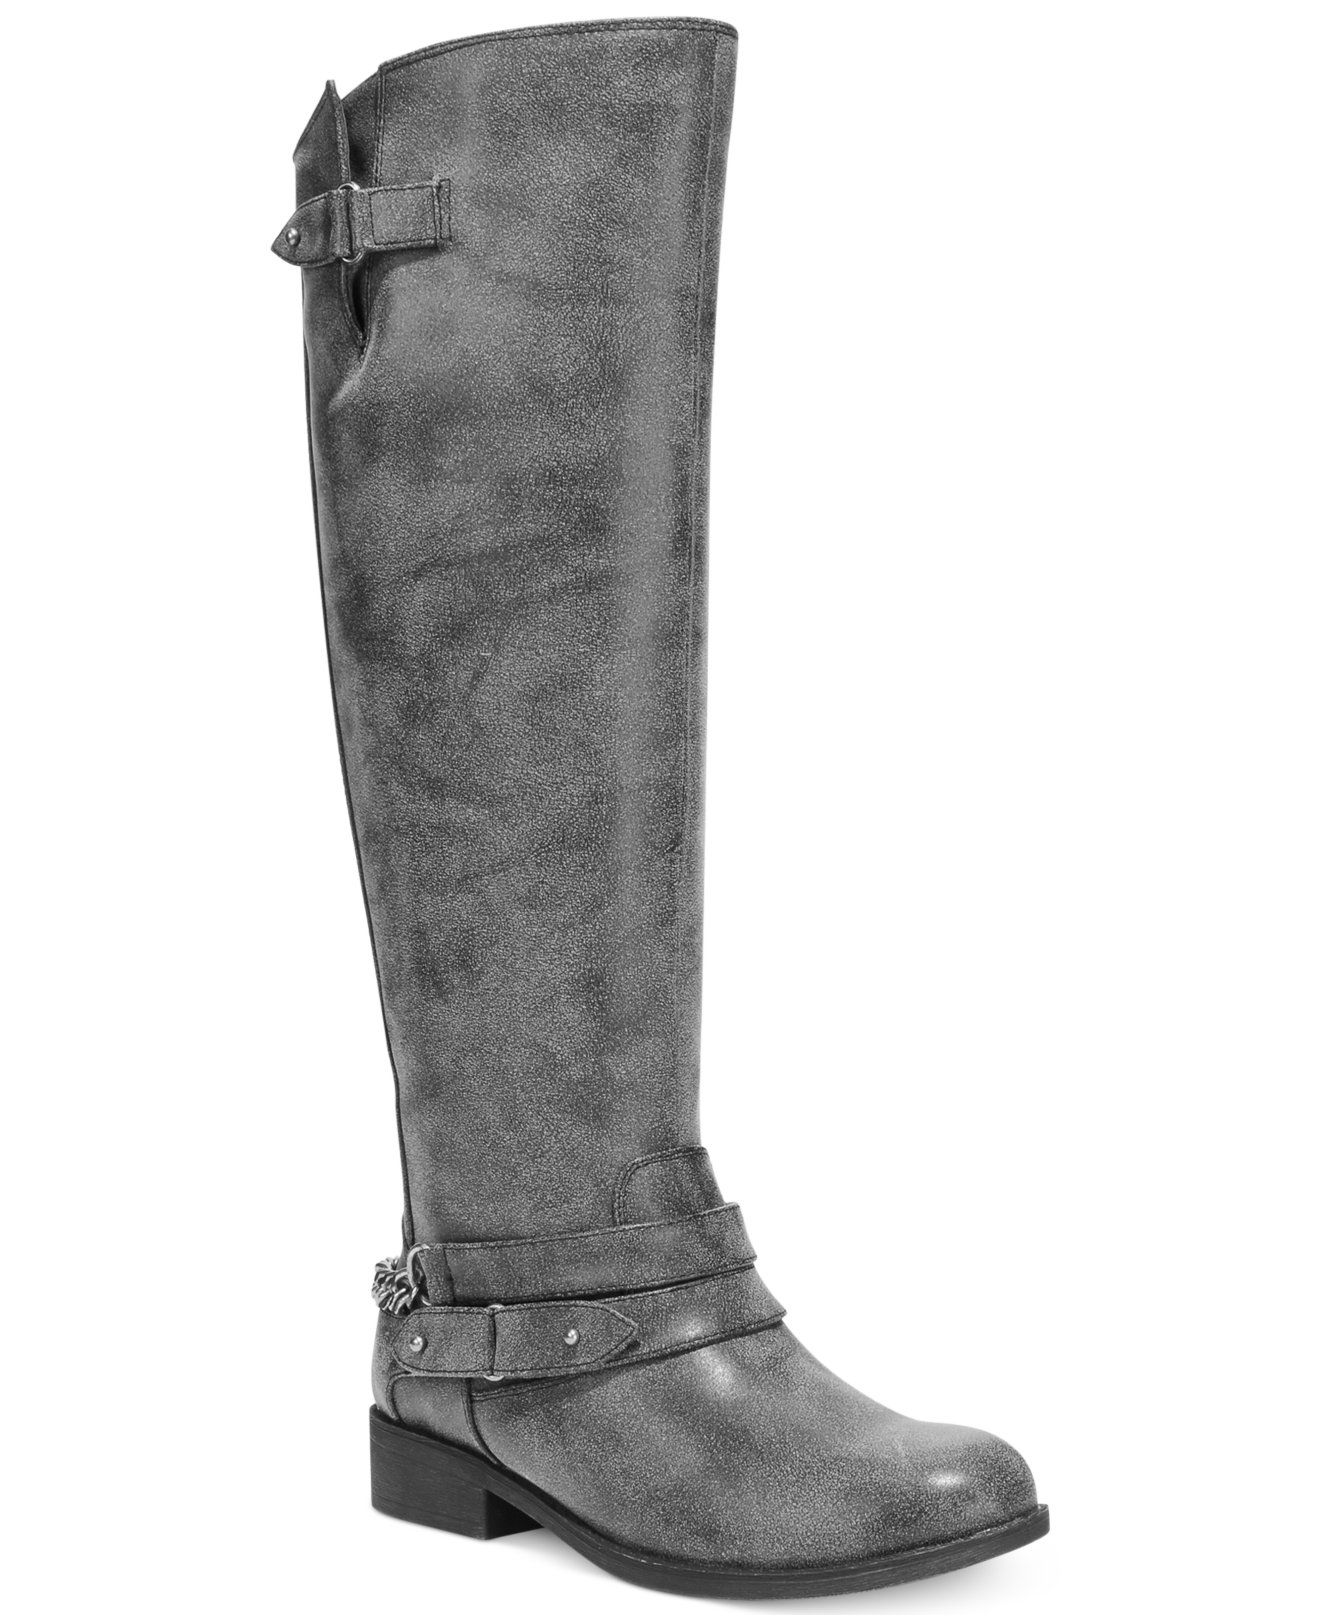 4c80167d62c7 Madden Girl Caanyon Tall Shaft Wide Calf Riding Boots - Juniors  Shoes -  Shoes - Macy s